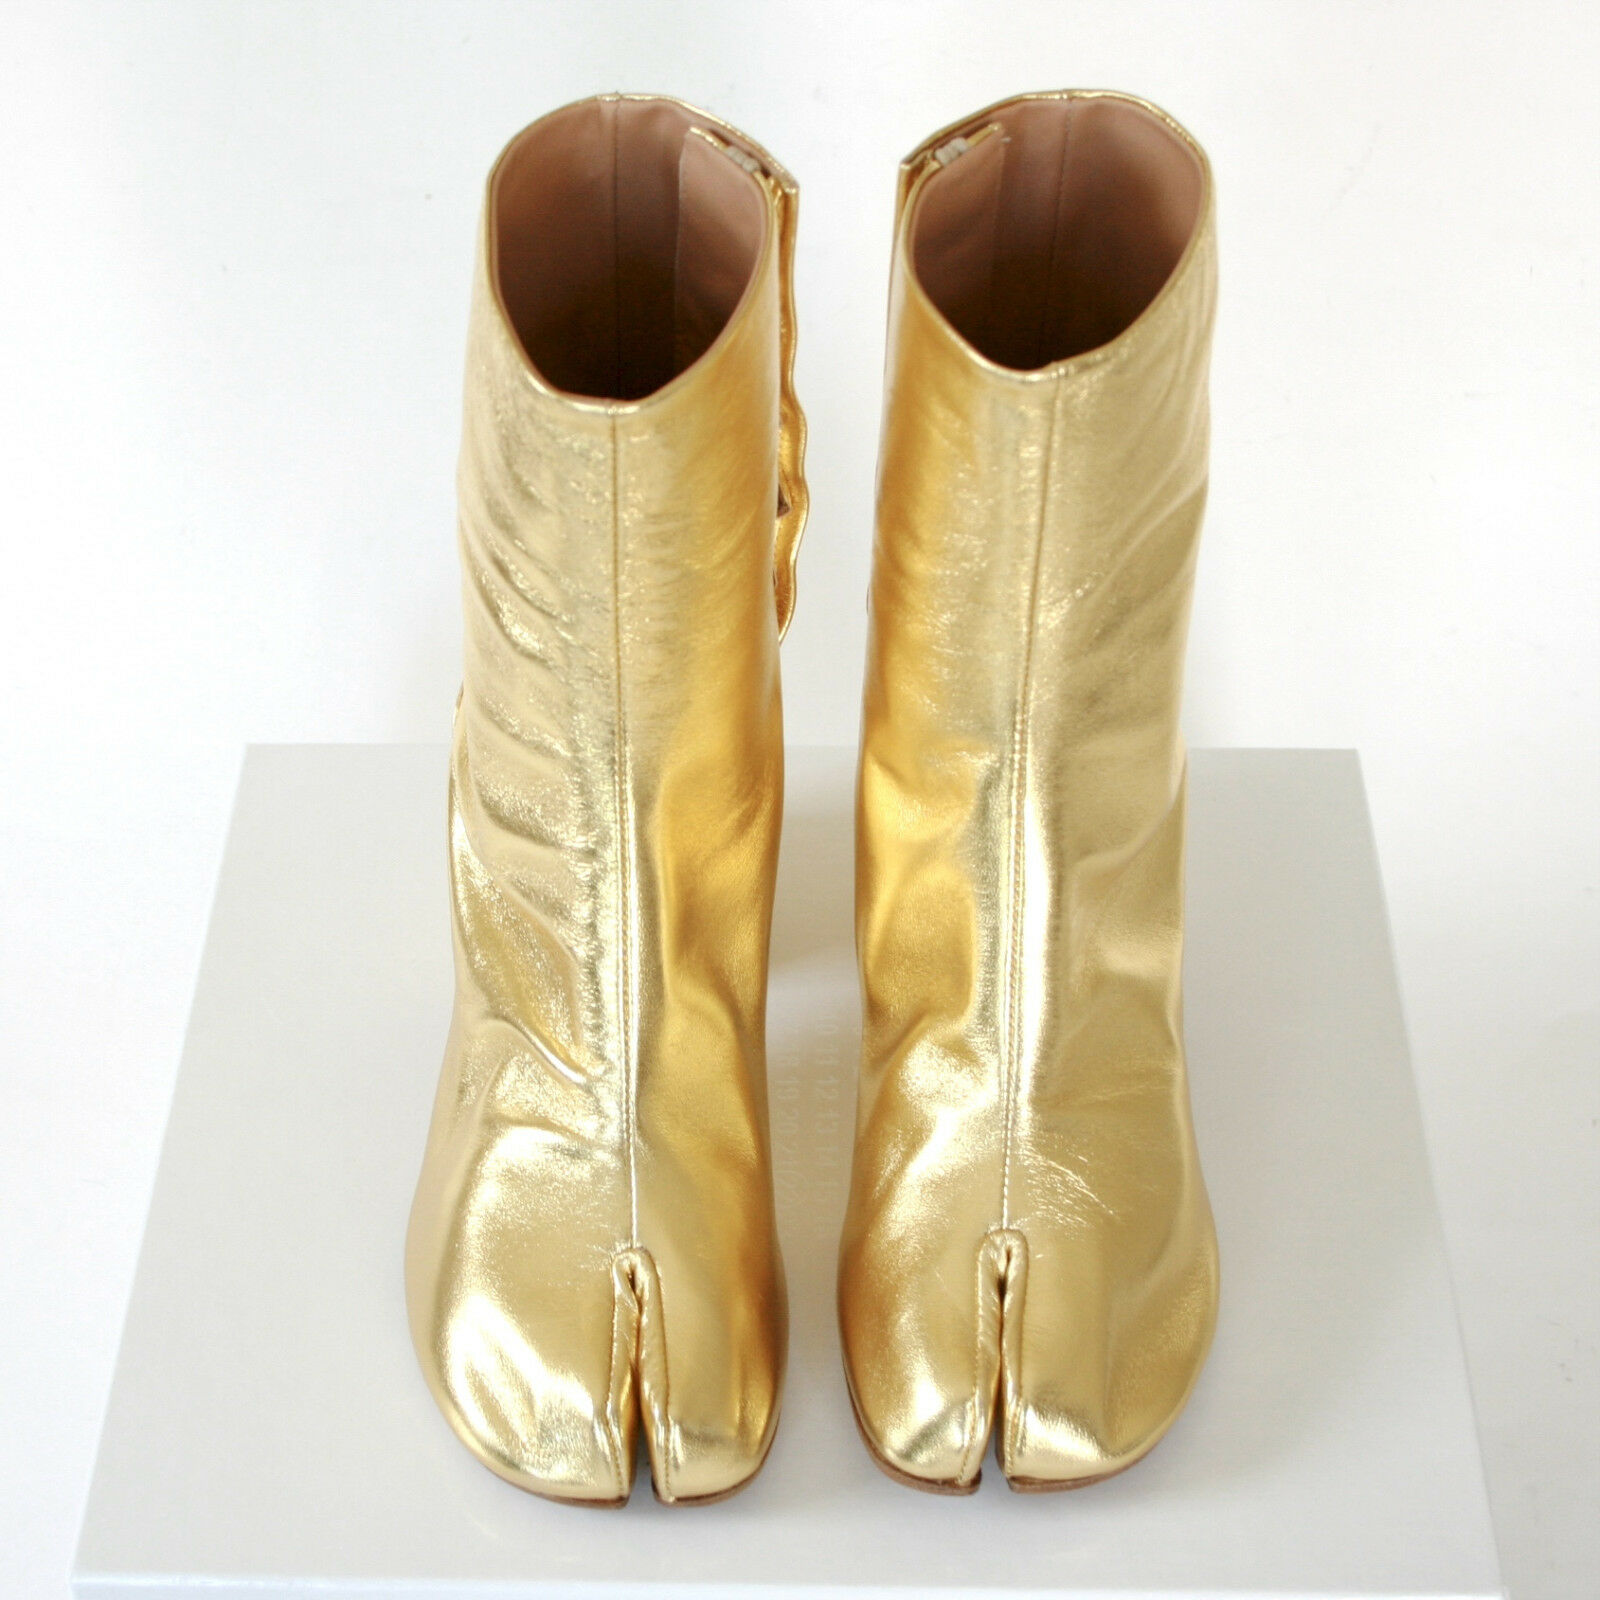 MAISON MARTIN MARGIELA tabi split split split toe gold leather high heel boots 38.5 NEW b8e9e8